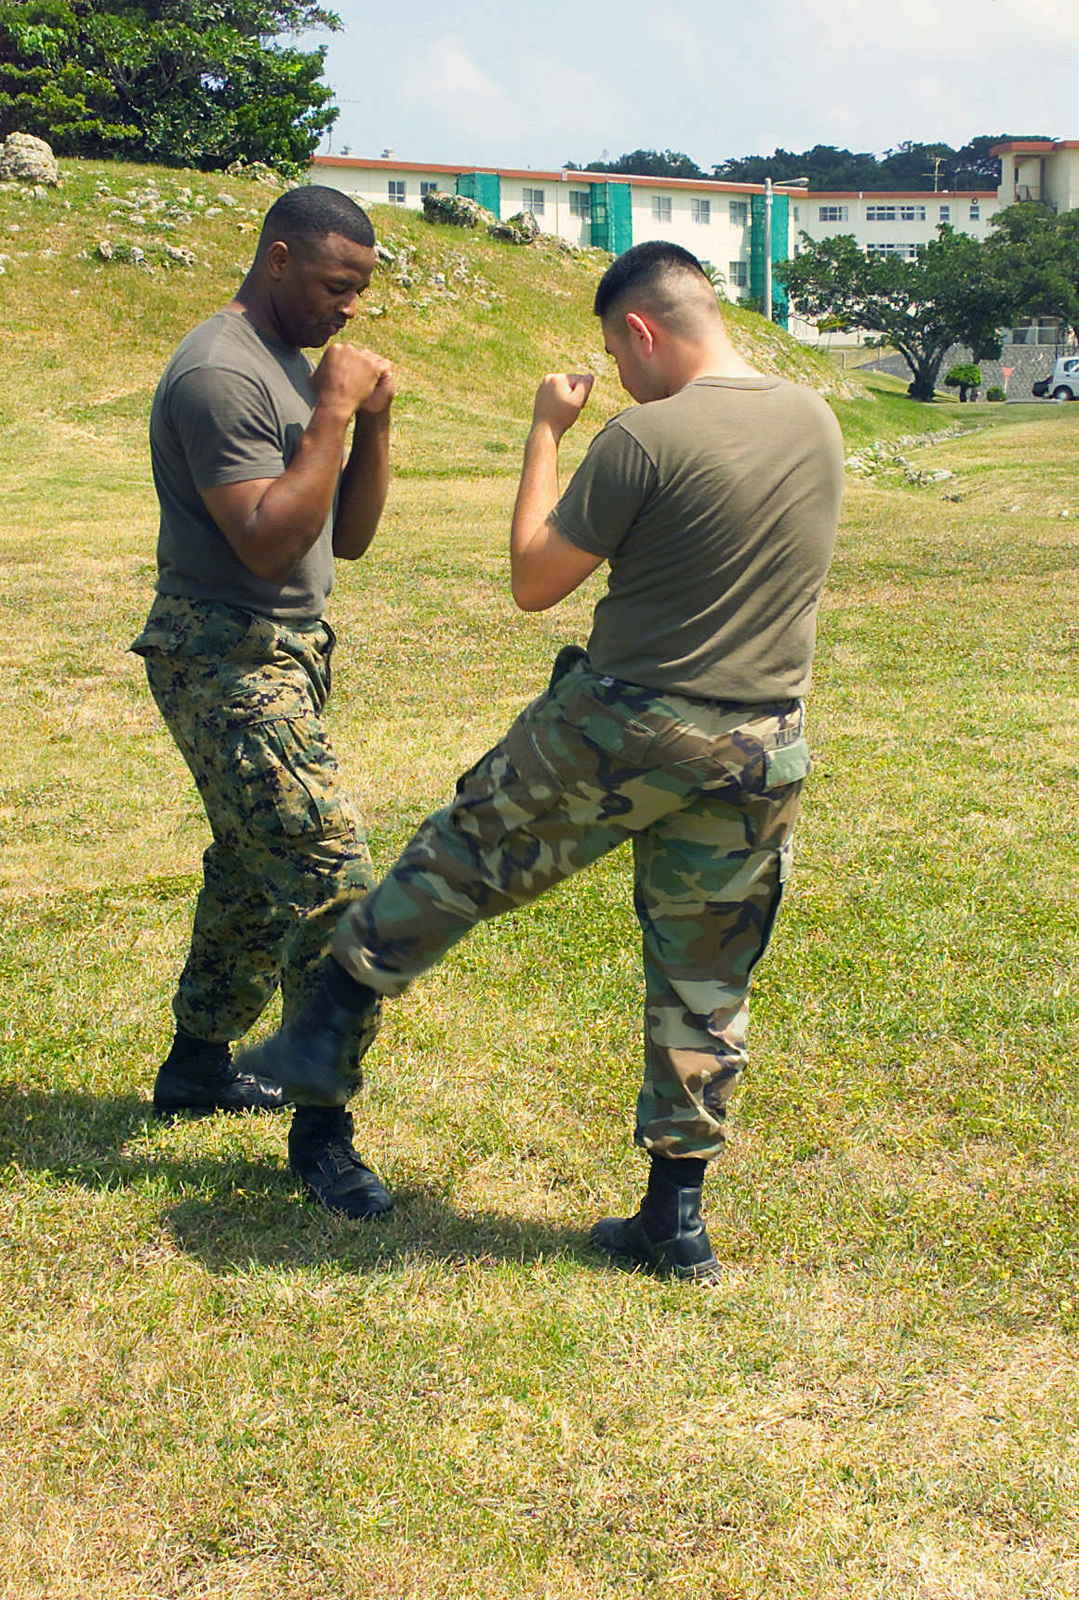 US Marine Corps (USMC) Corporal (CPL) Joe Villegas (right), a Videographer assigned to the Combat Visual Information Center (CVIC), and USMC Sergeant (SGT) Elvis Raines, a Graphic Artist assigned to the CVIC, demonstrate body-hardening exercises during a tan belt instructions course, part of the Marine Corps Martial Arts Program (MCMAP) at Camp Foster, Okinawa, Japan